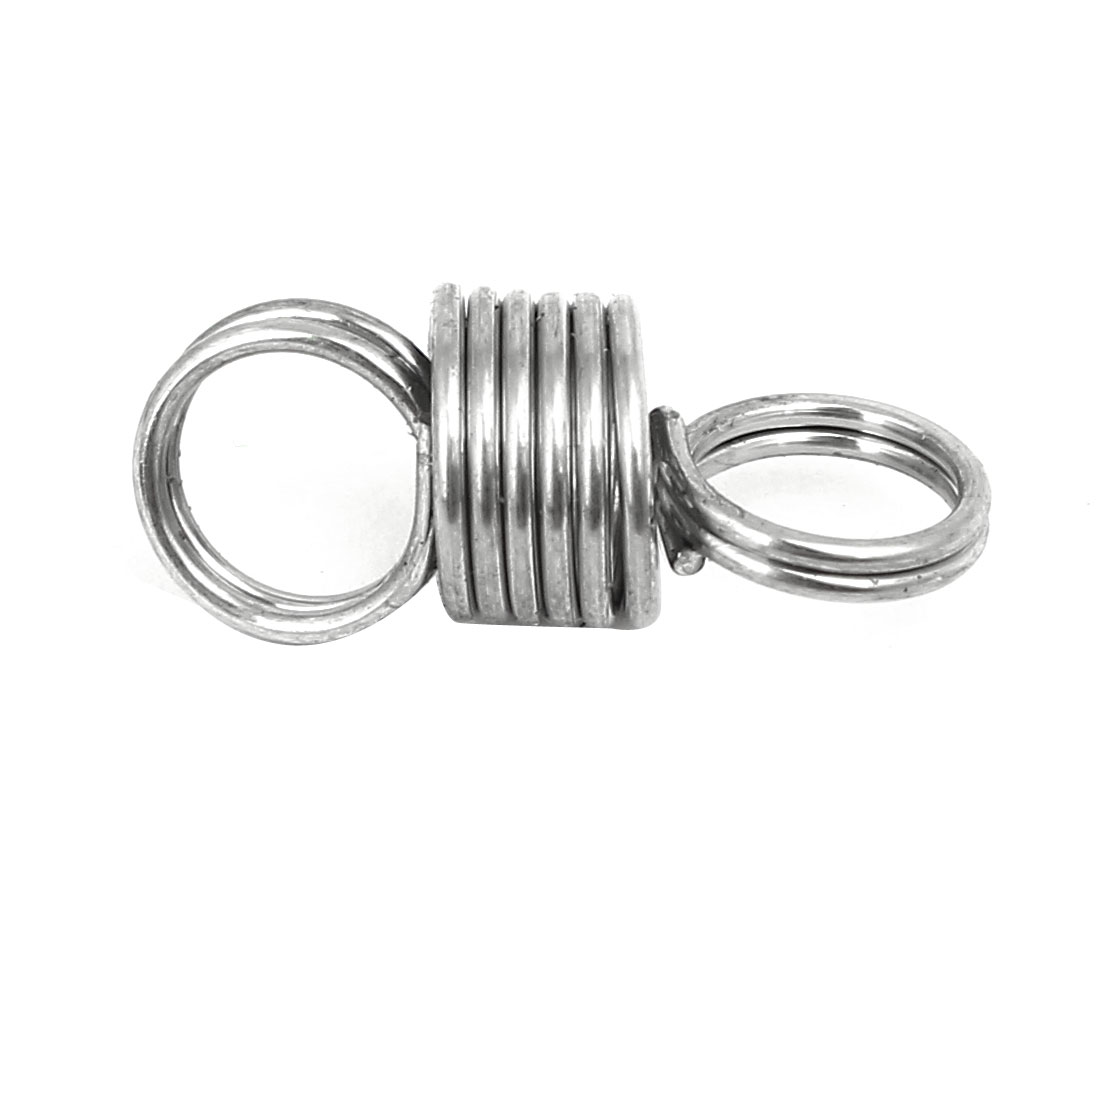 0.8mmx8mmx20mm 304 Stainless Steel Tension Springs Silver Tone 5pcs - image 1 of 3